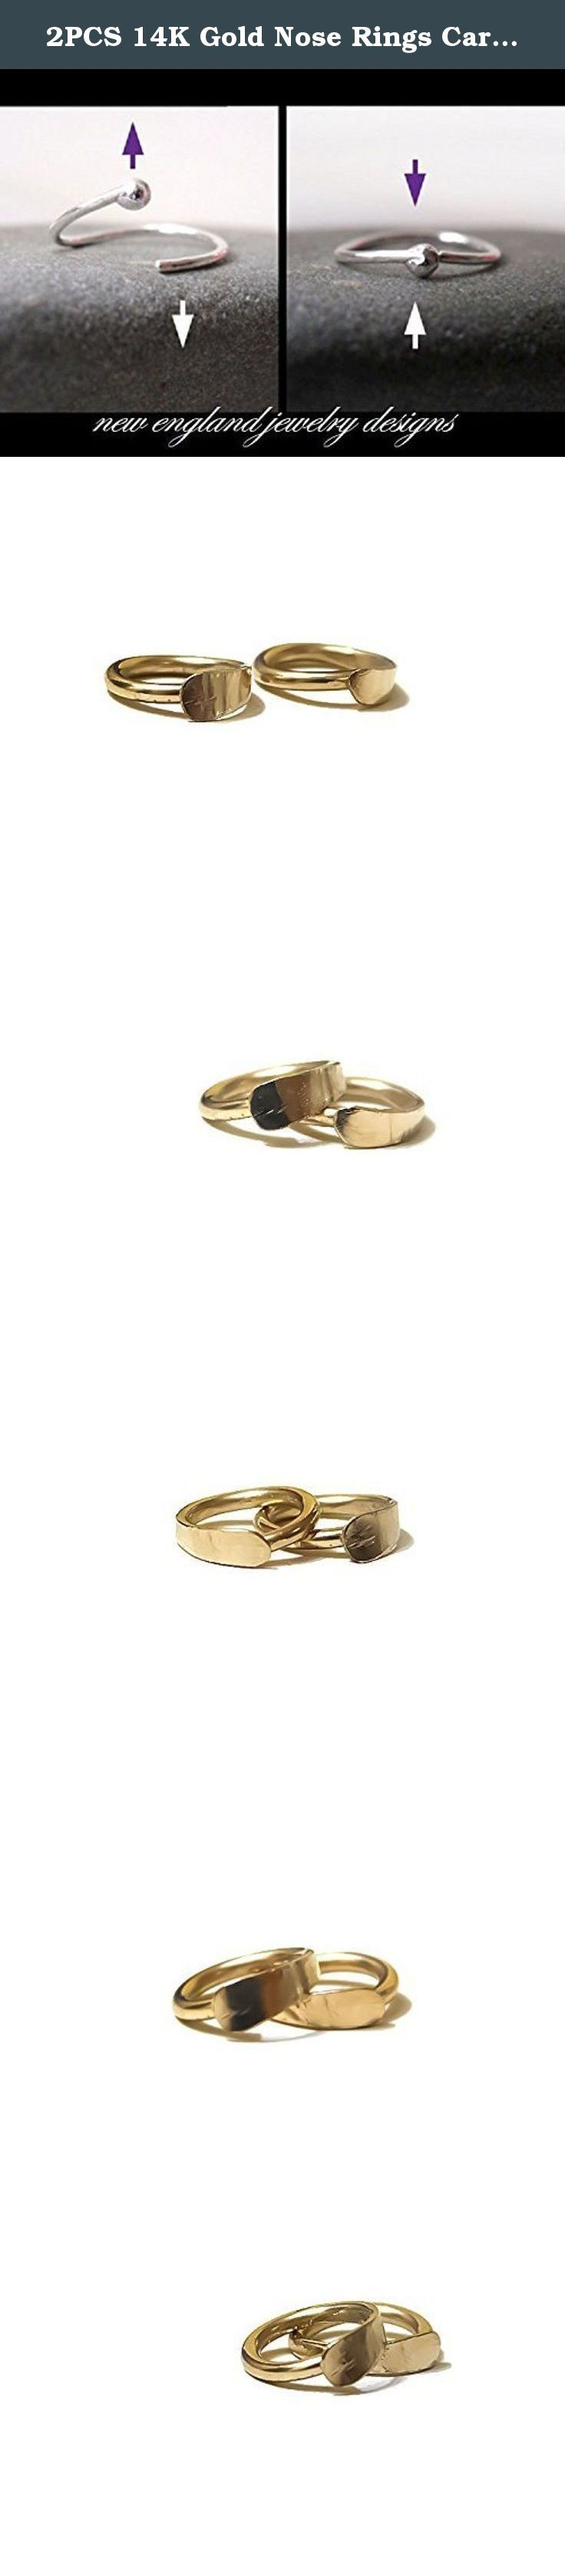 2PCS 14K Gold Nose Rings Cartilage Hoop Earrings Hammered Flat Ear Lobe Daith Helix Tragus 22G-16G 6MM-12MM. Gorgeous in 14k solid gold (hallmarked) set of two hammered hoops for piercings. These are forged by hand and one end is hammered to make it gradually wider and give them a smooth, satiny surface. The opposite end is fine finished for best comfort and then their polished to a high shine finish. These are available in 4 different gauges and in sizes (inner diameter) 6mm-12mm. The…